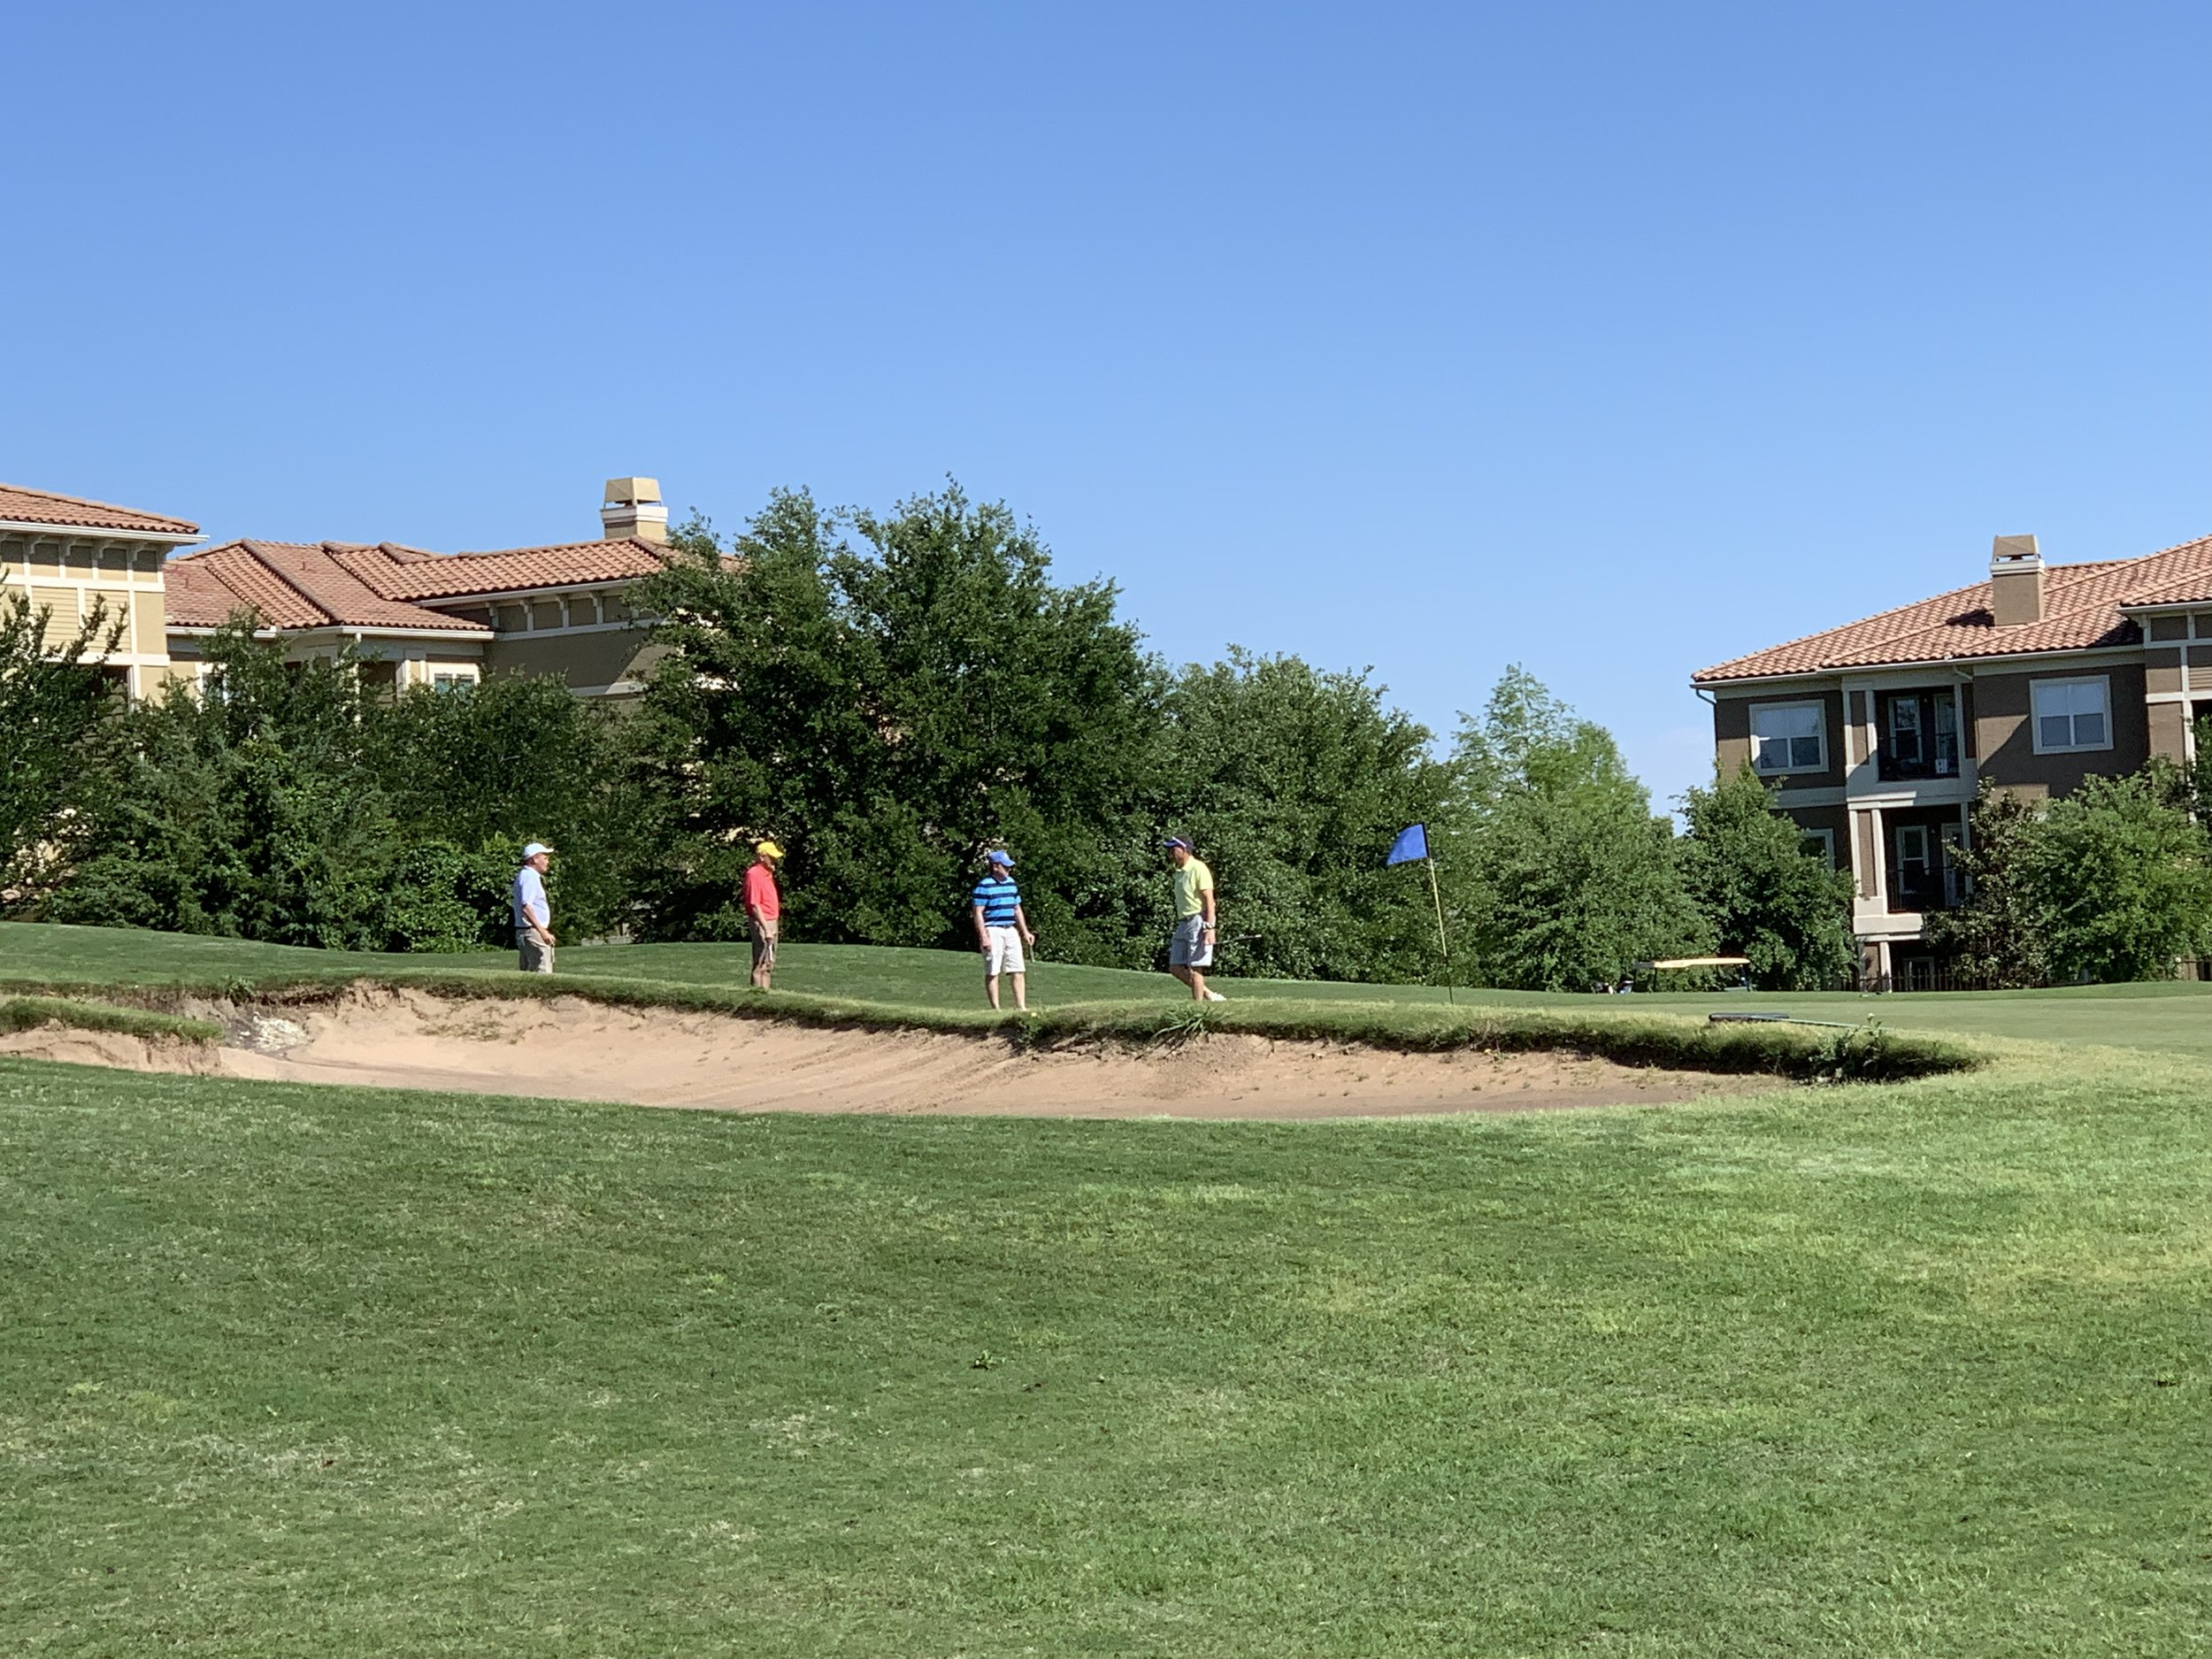 Photo Apr 26, 10 13 22 AM.jpg